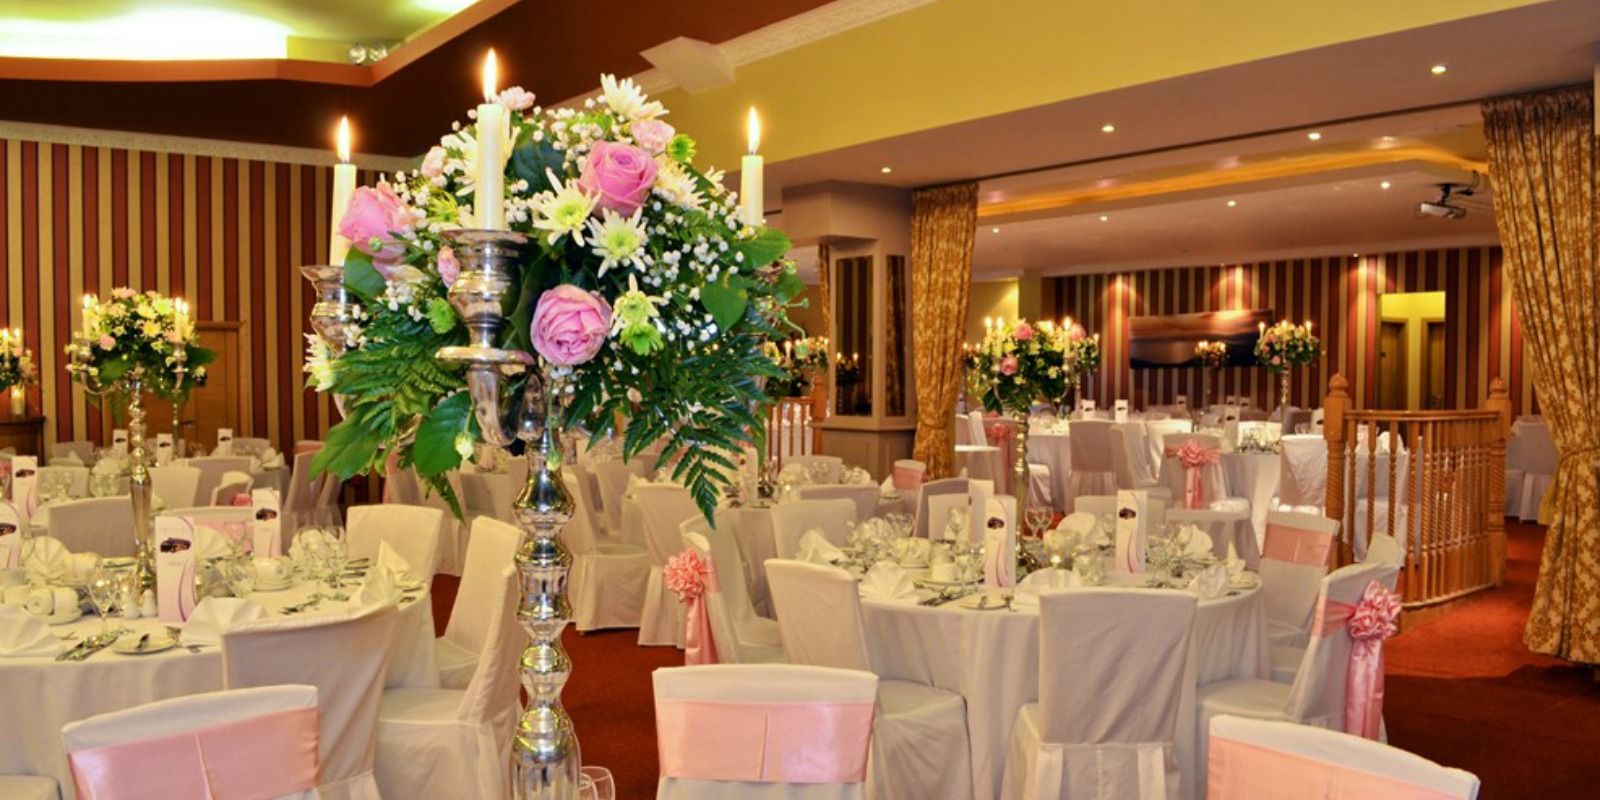 Wedding setup at Broadhaven Bay Hotel